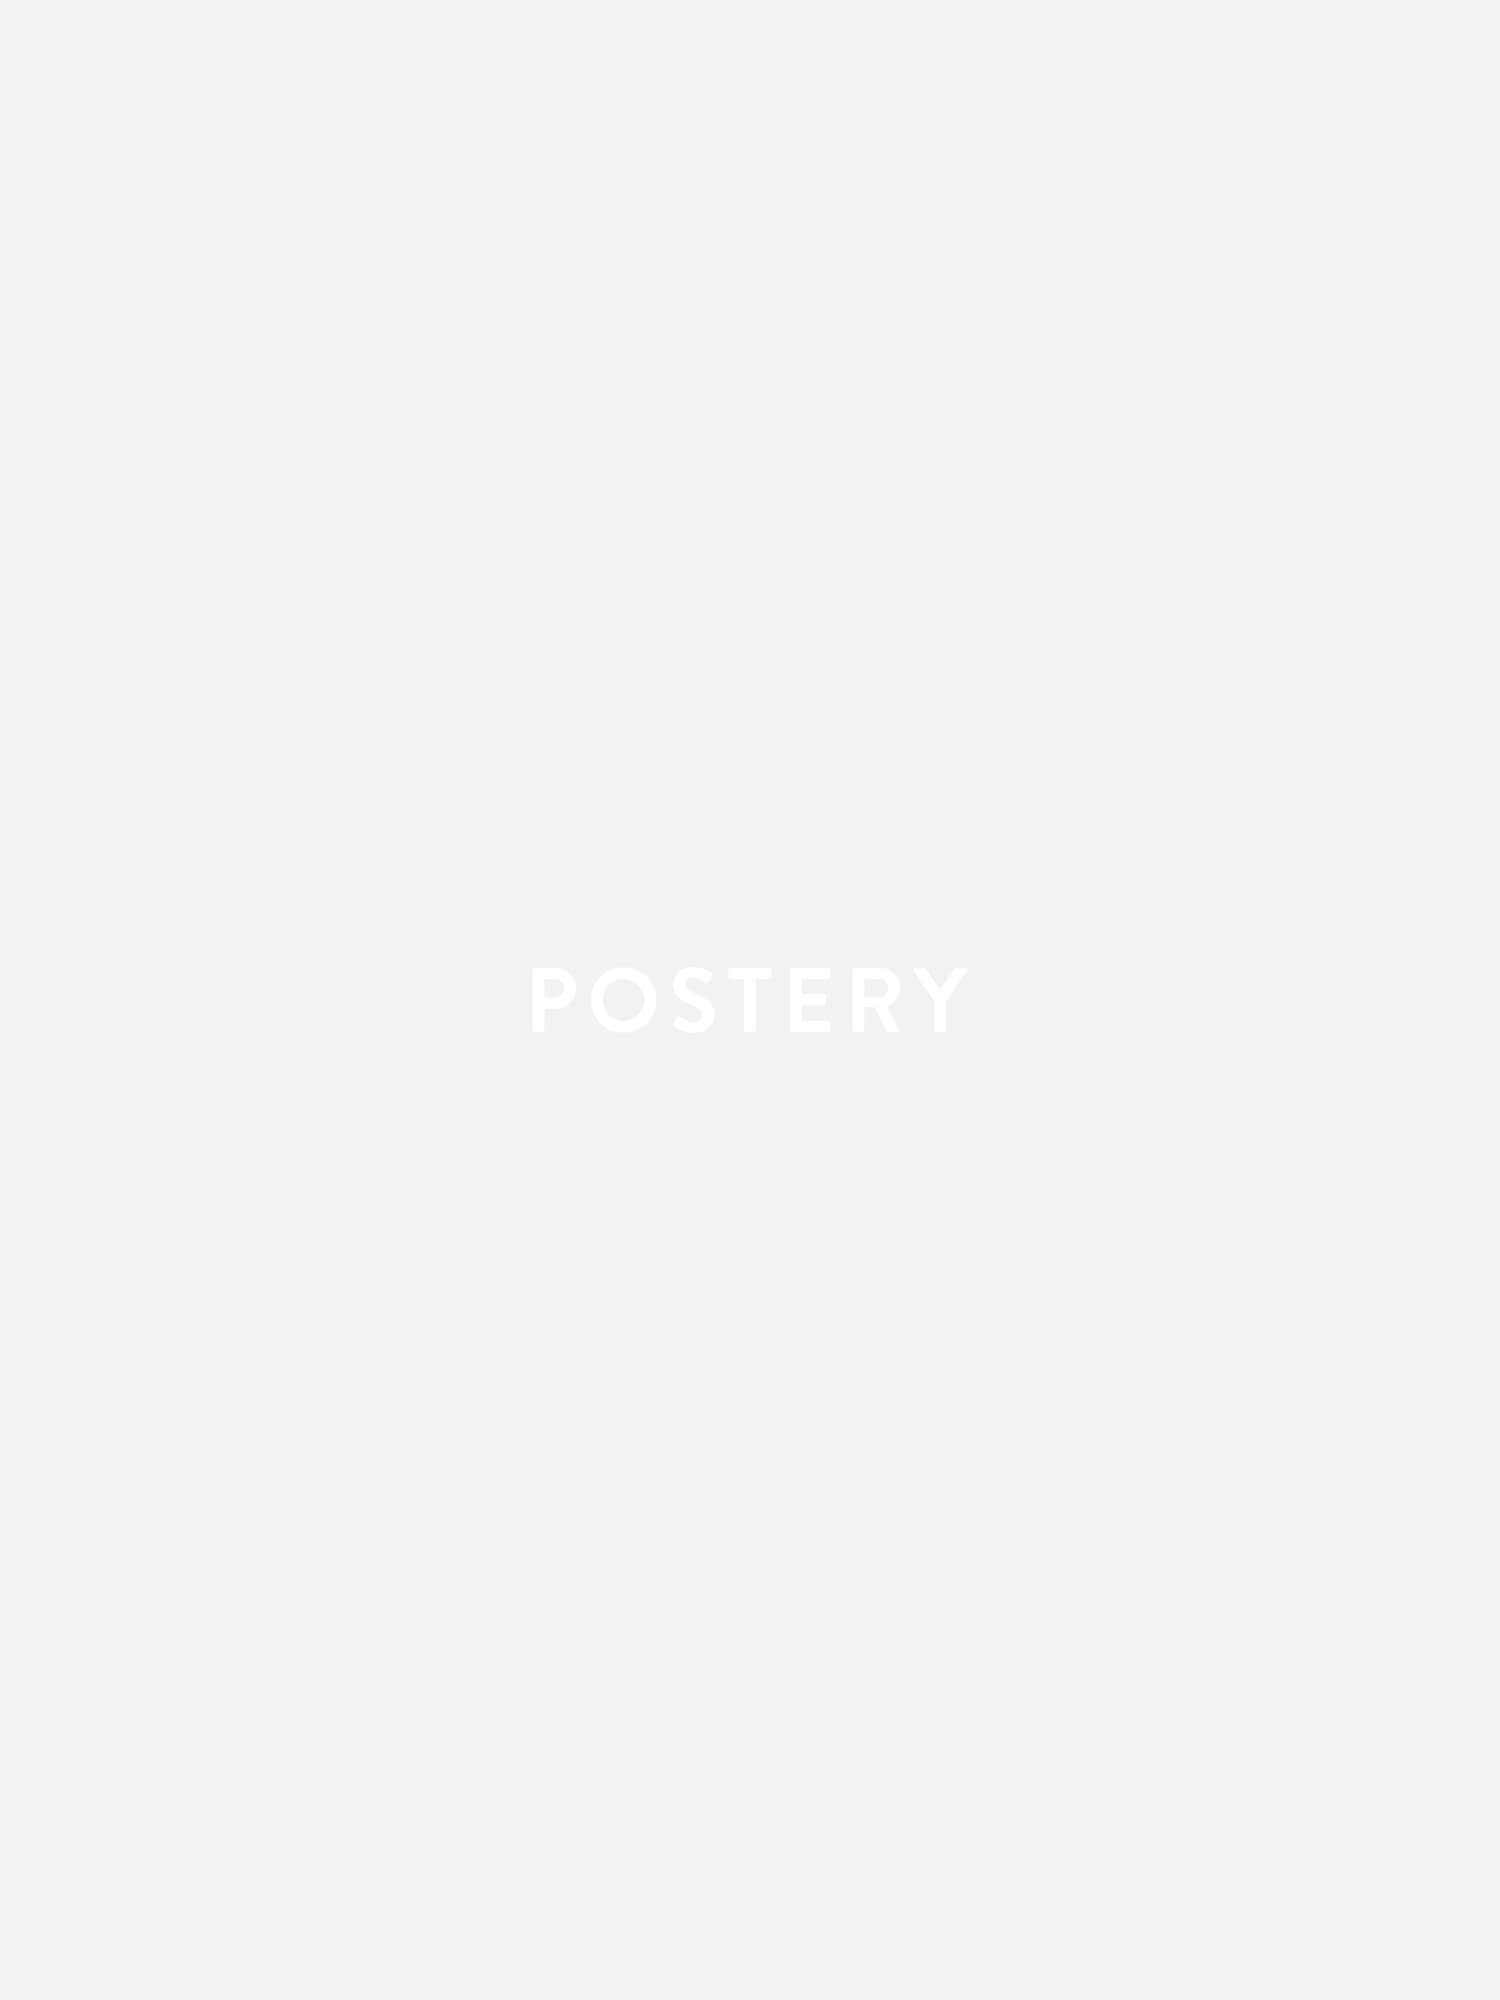 Bamboo Fern Poster